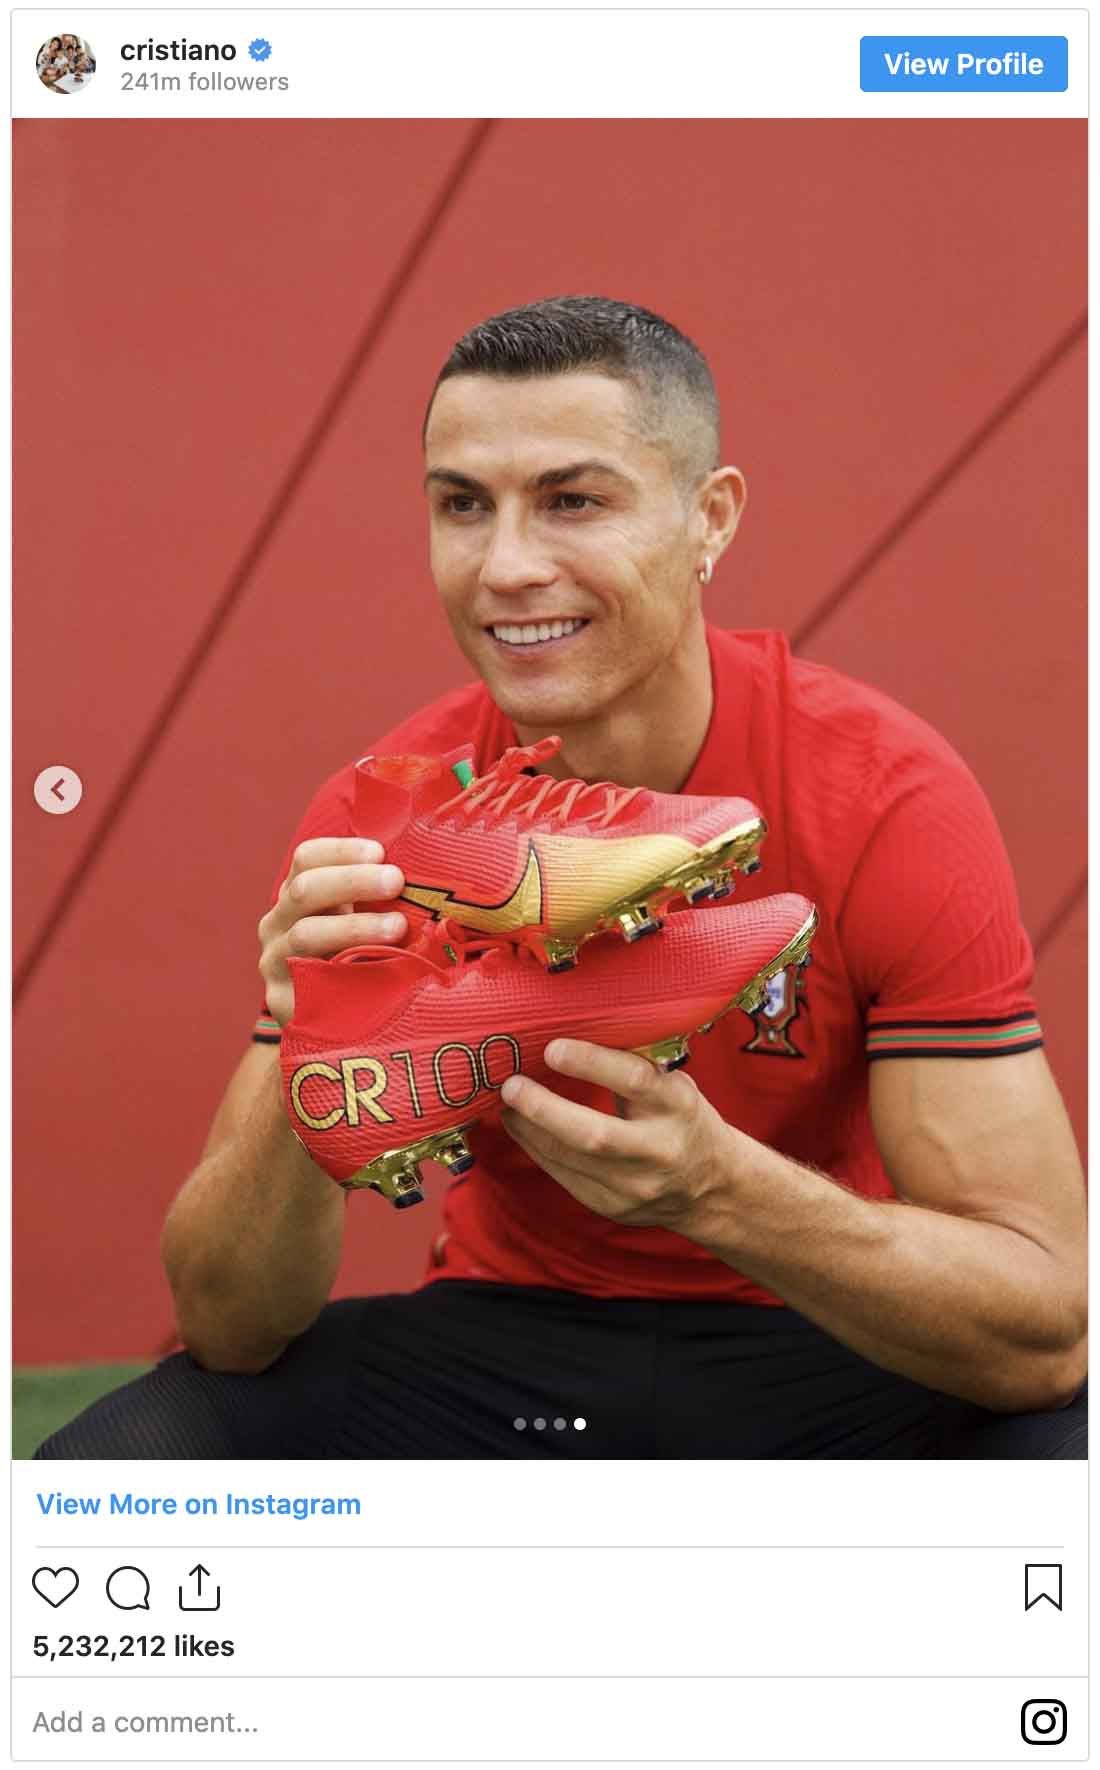 Instagram ads examples — Cristiano